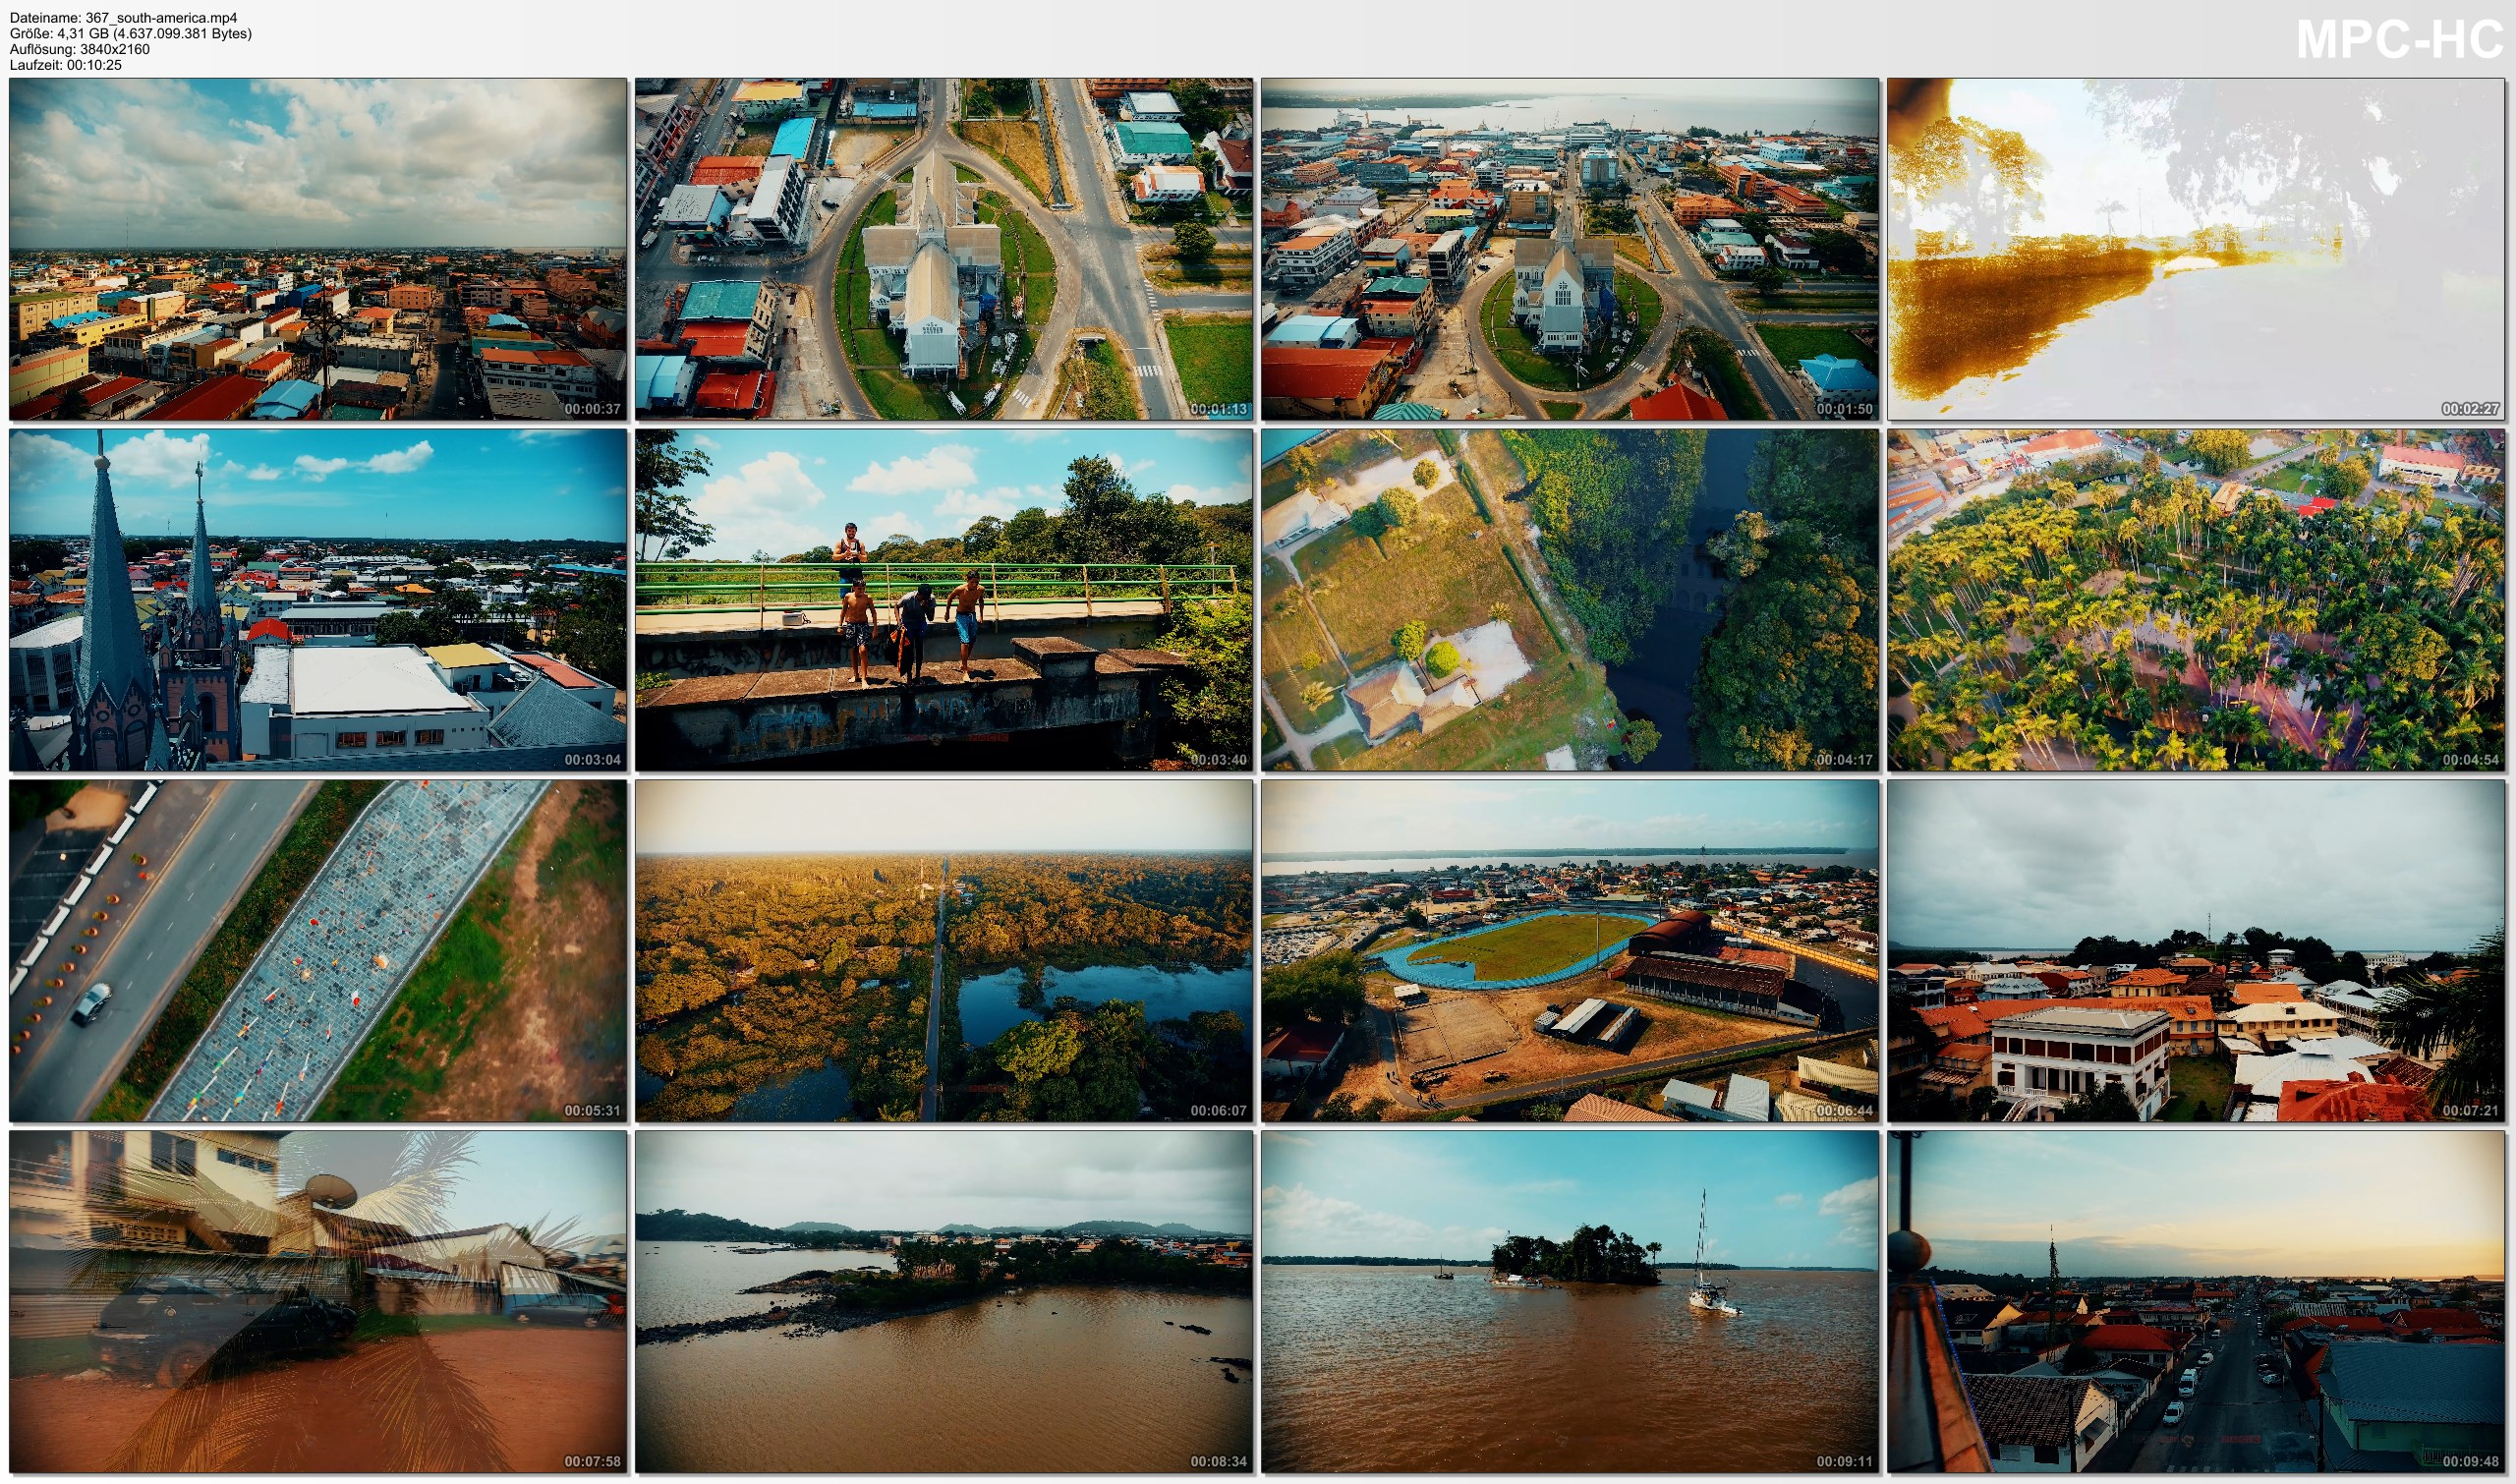 Drone Pictures from Video 【4K】Drone Footage | The Beauty of The Guianas in 11 Minutes 2019 | Cinematic Aerial French Guyana SR